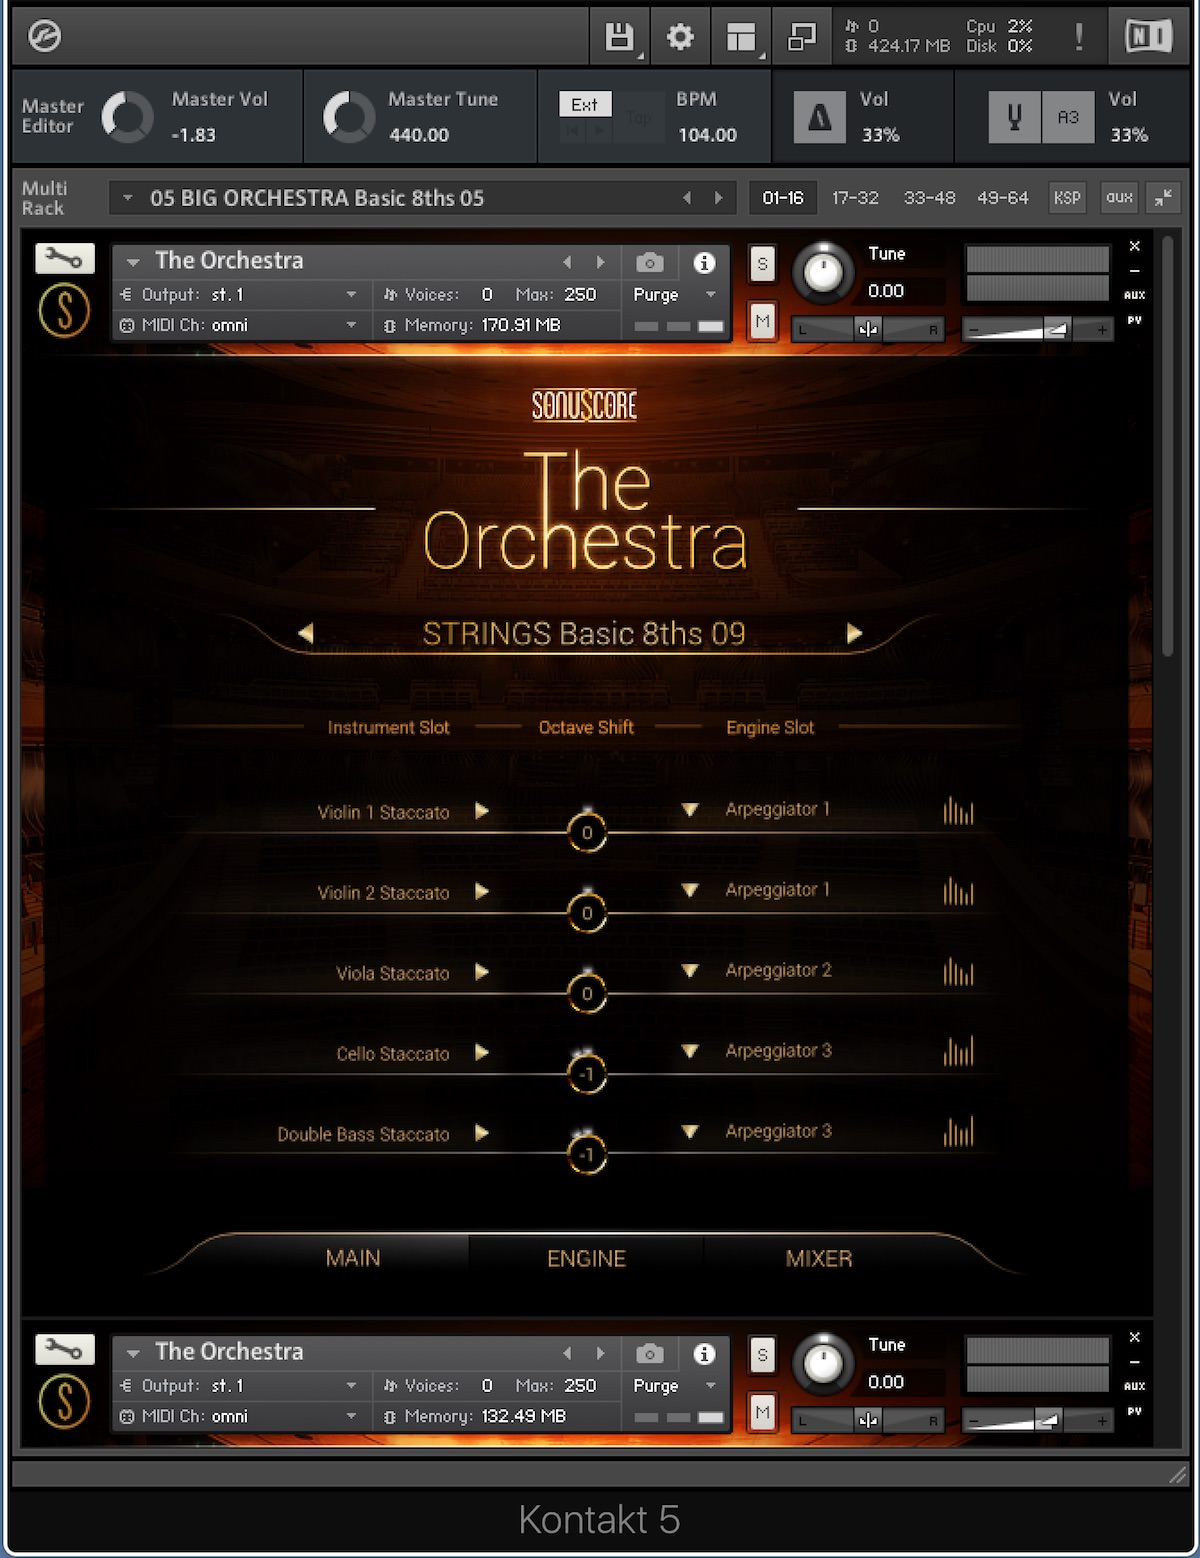 Review-Sonuscore-The-Orchestra-01-The-Orchestra.jpg